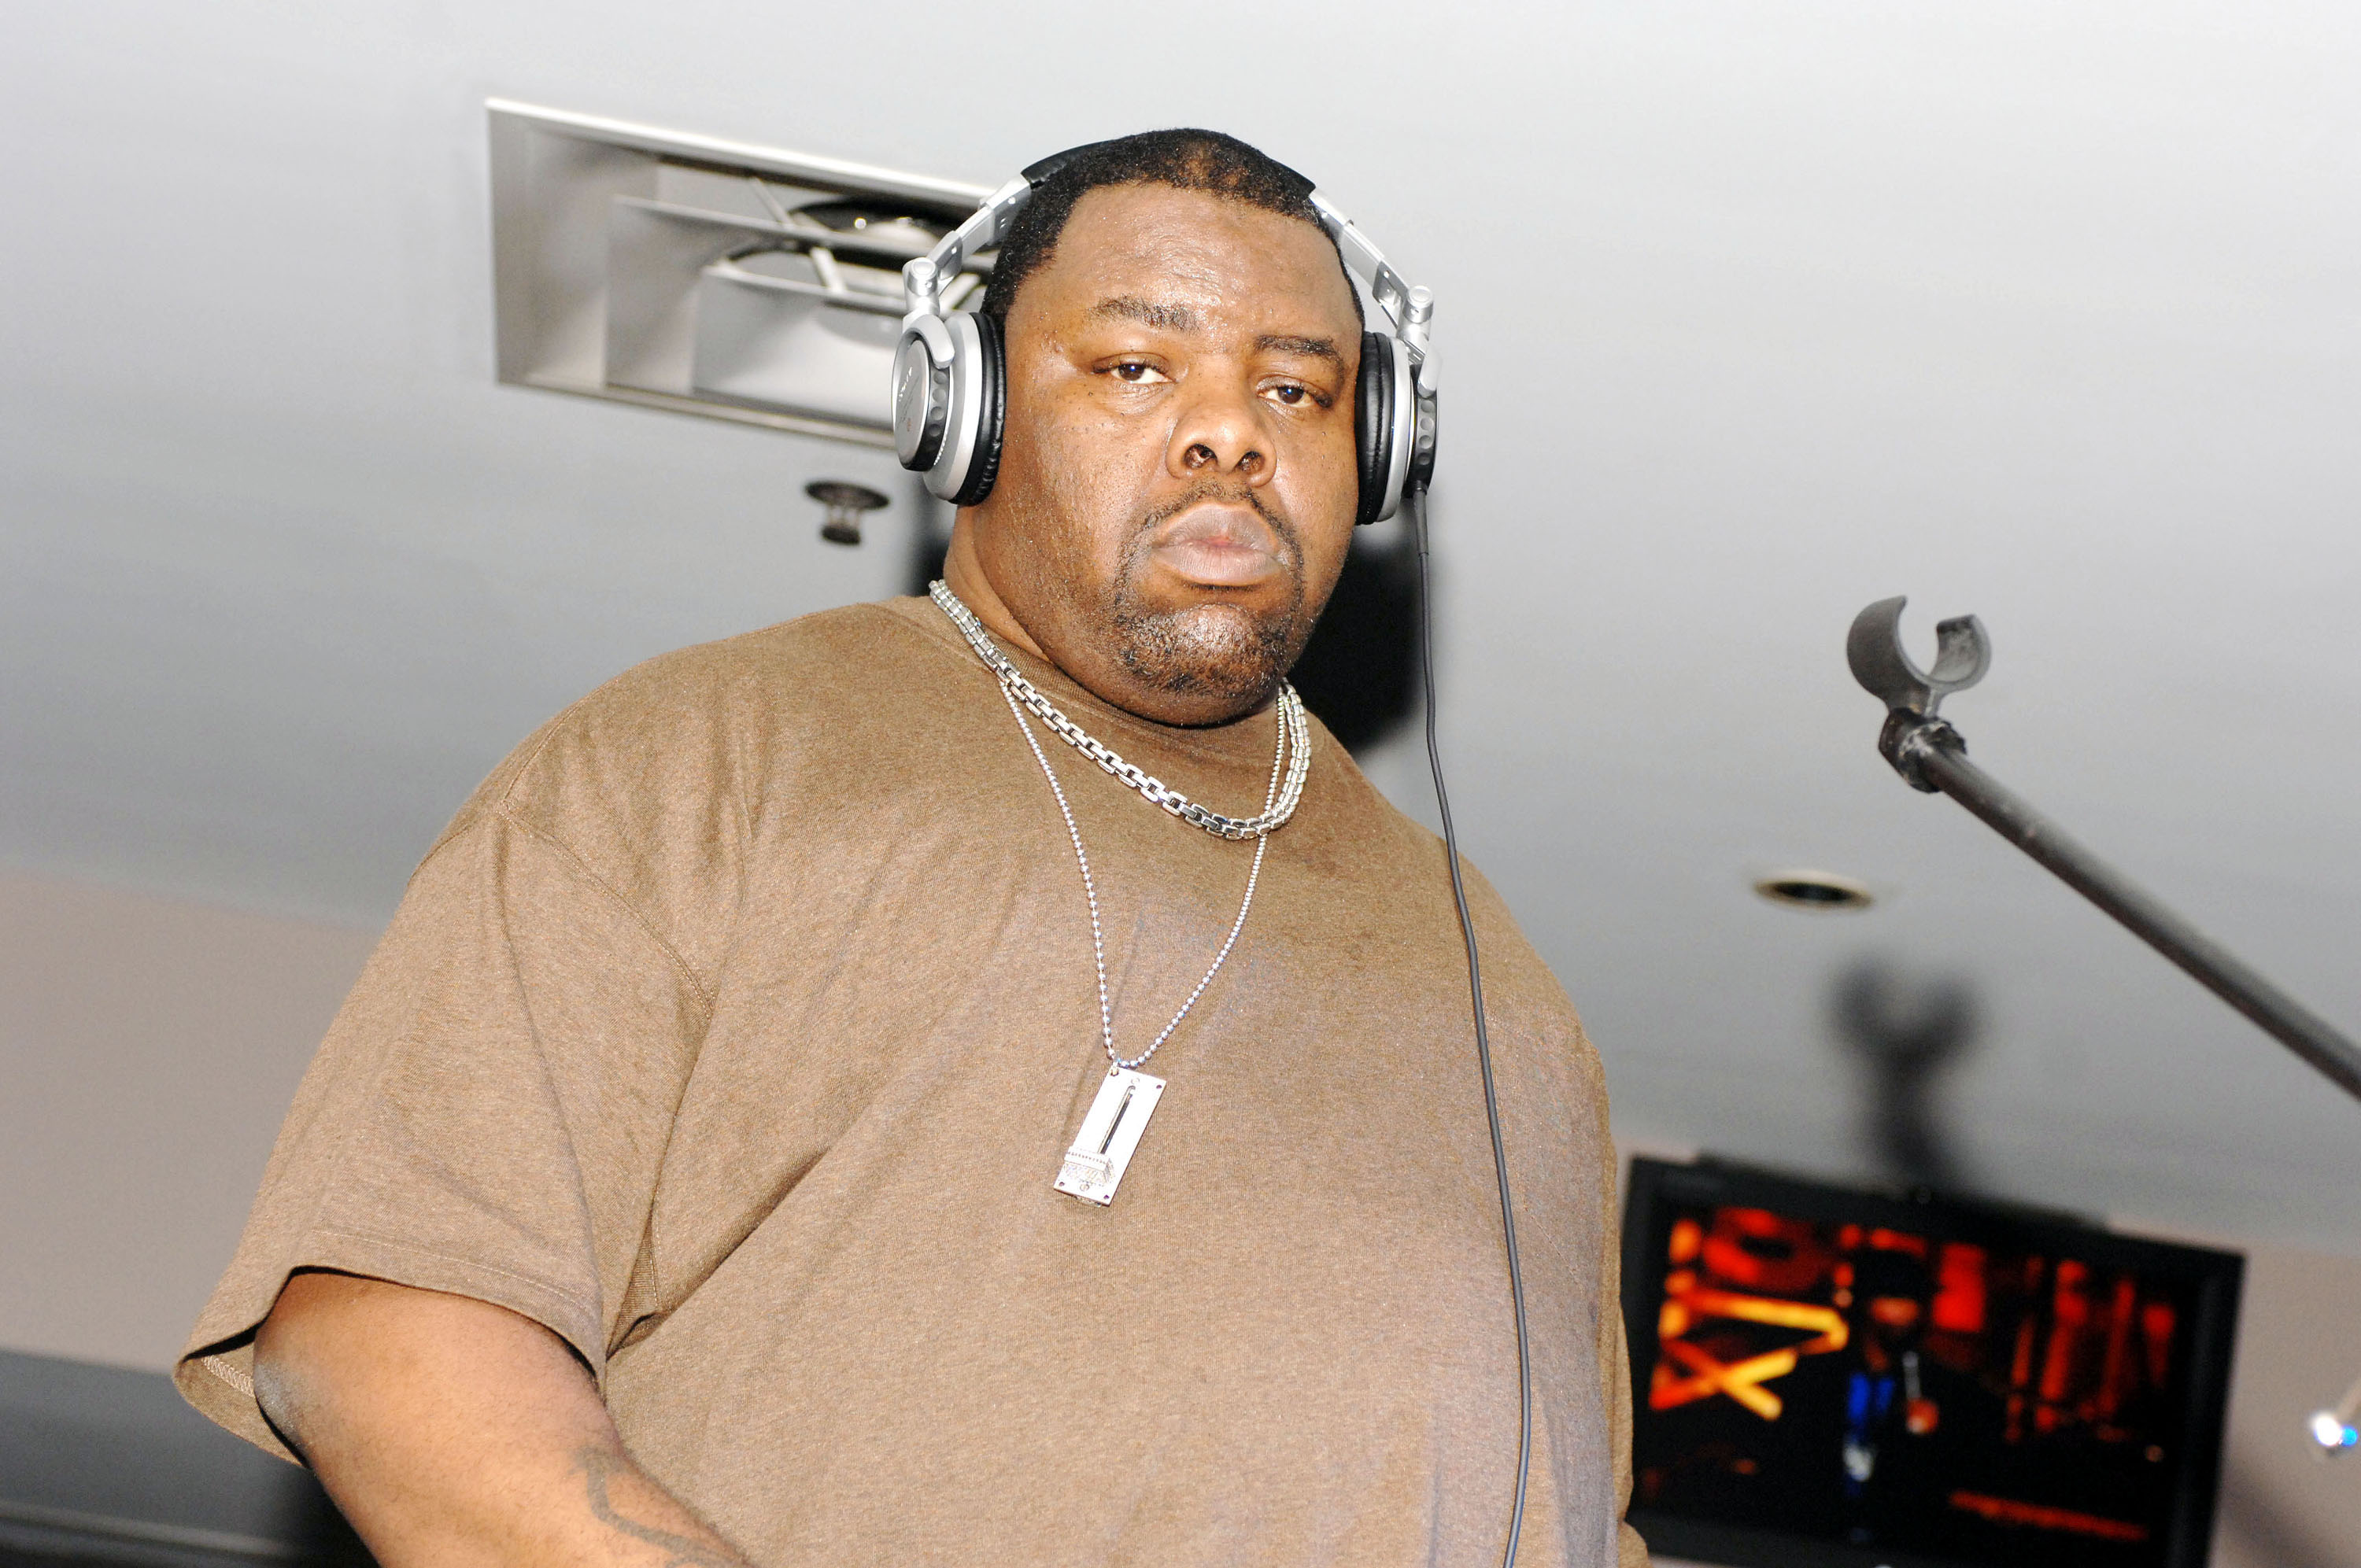 Biz Markie's family ask for 'thoughts and prayers' following death rumors